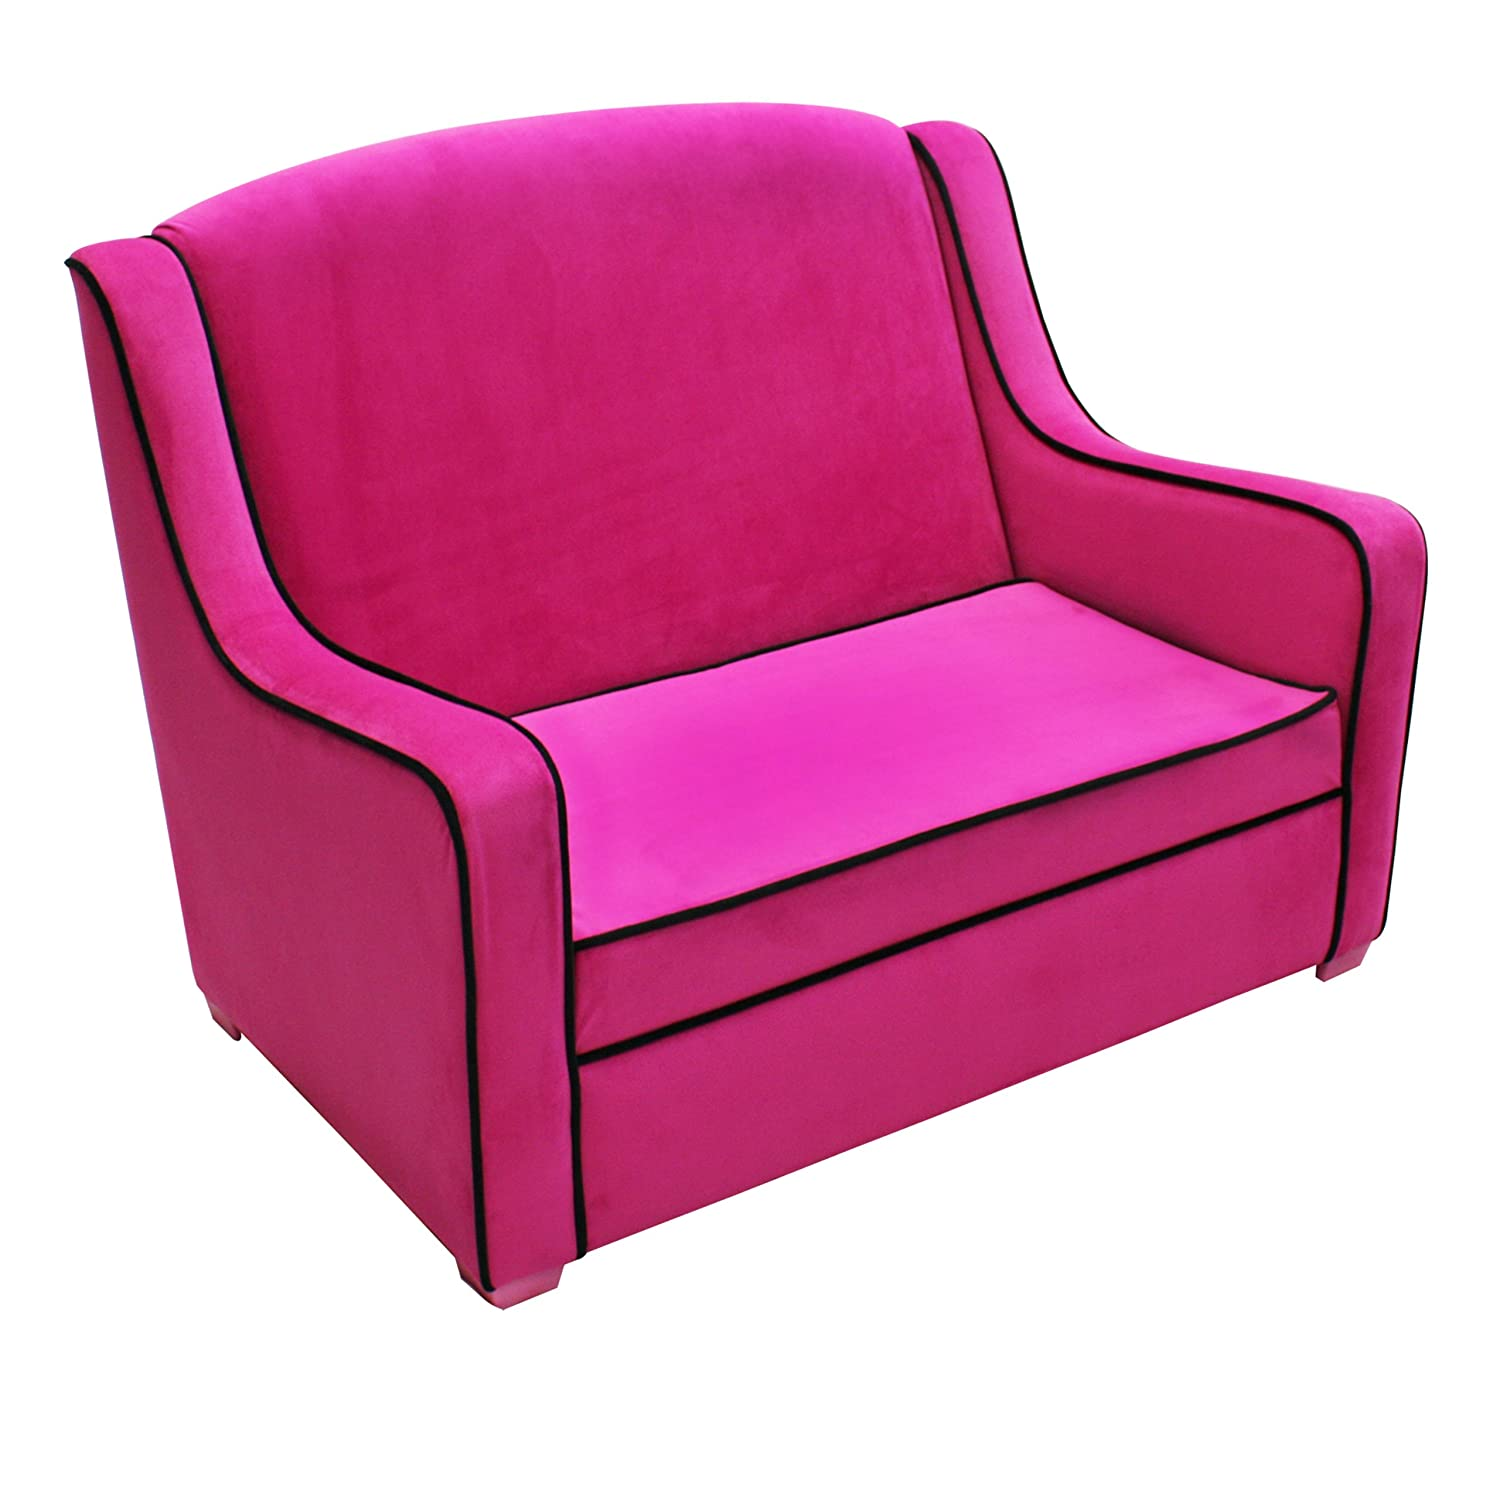 Amazon: Newco Kids Tween Camille Sofa, Hot Pink/Black: Baby